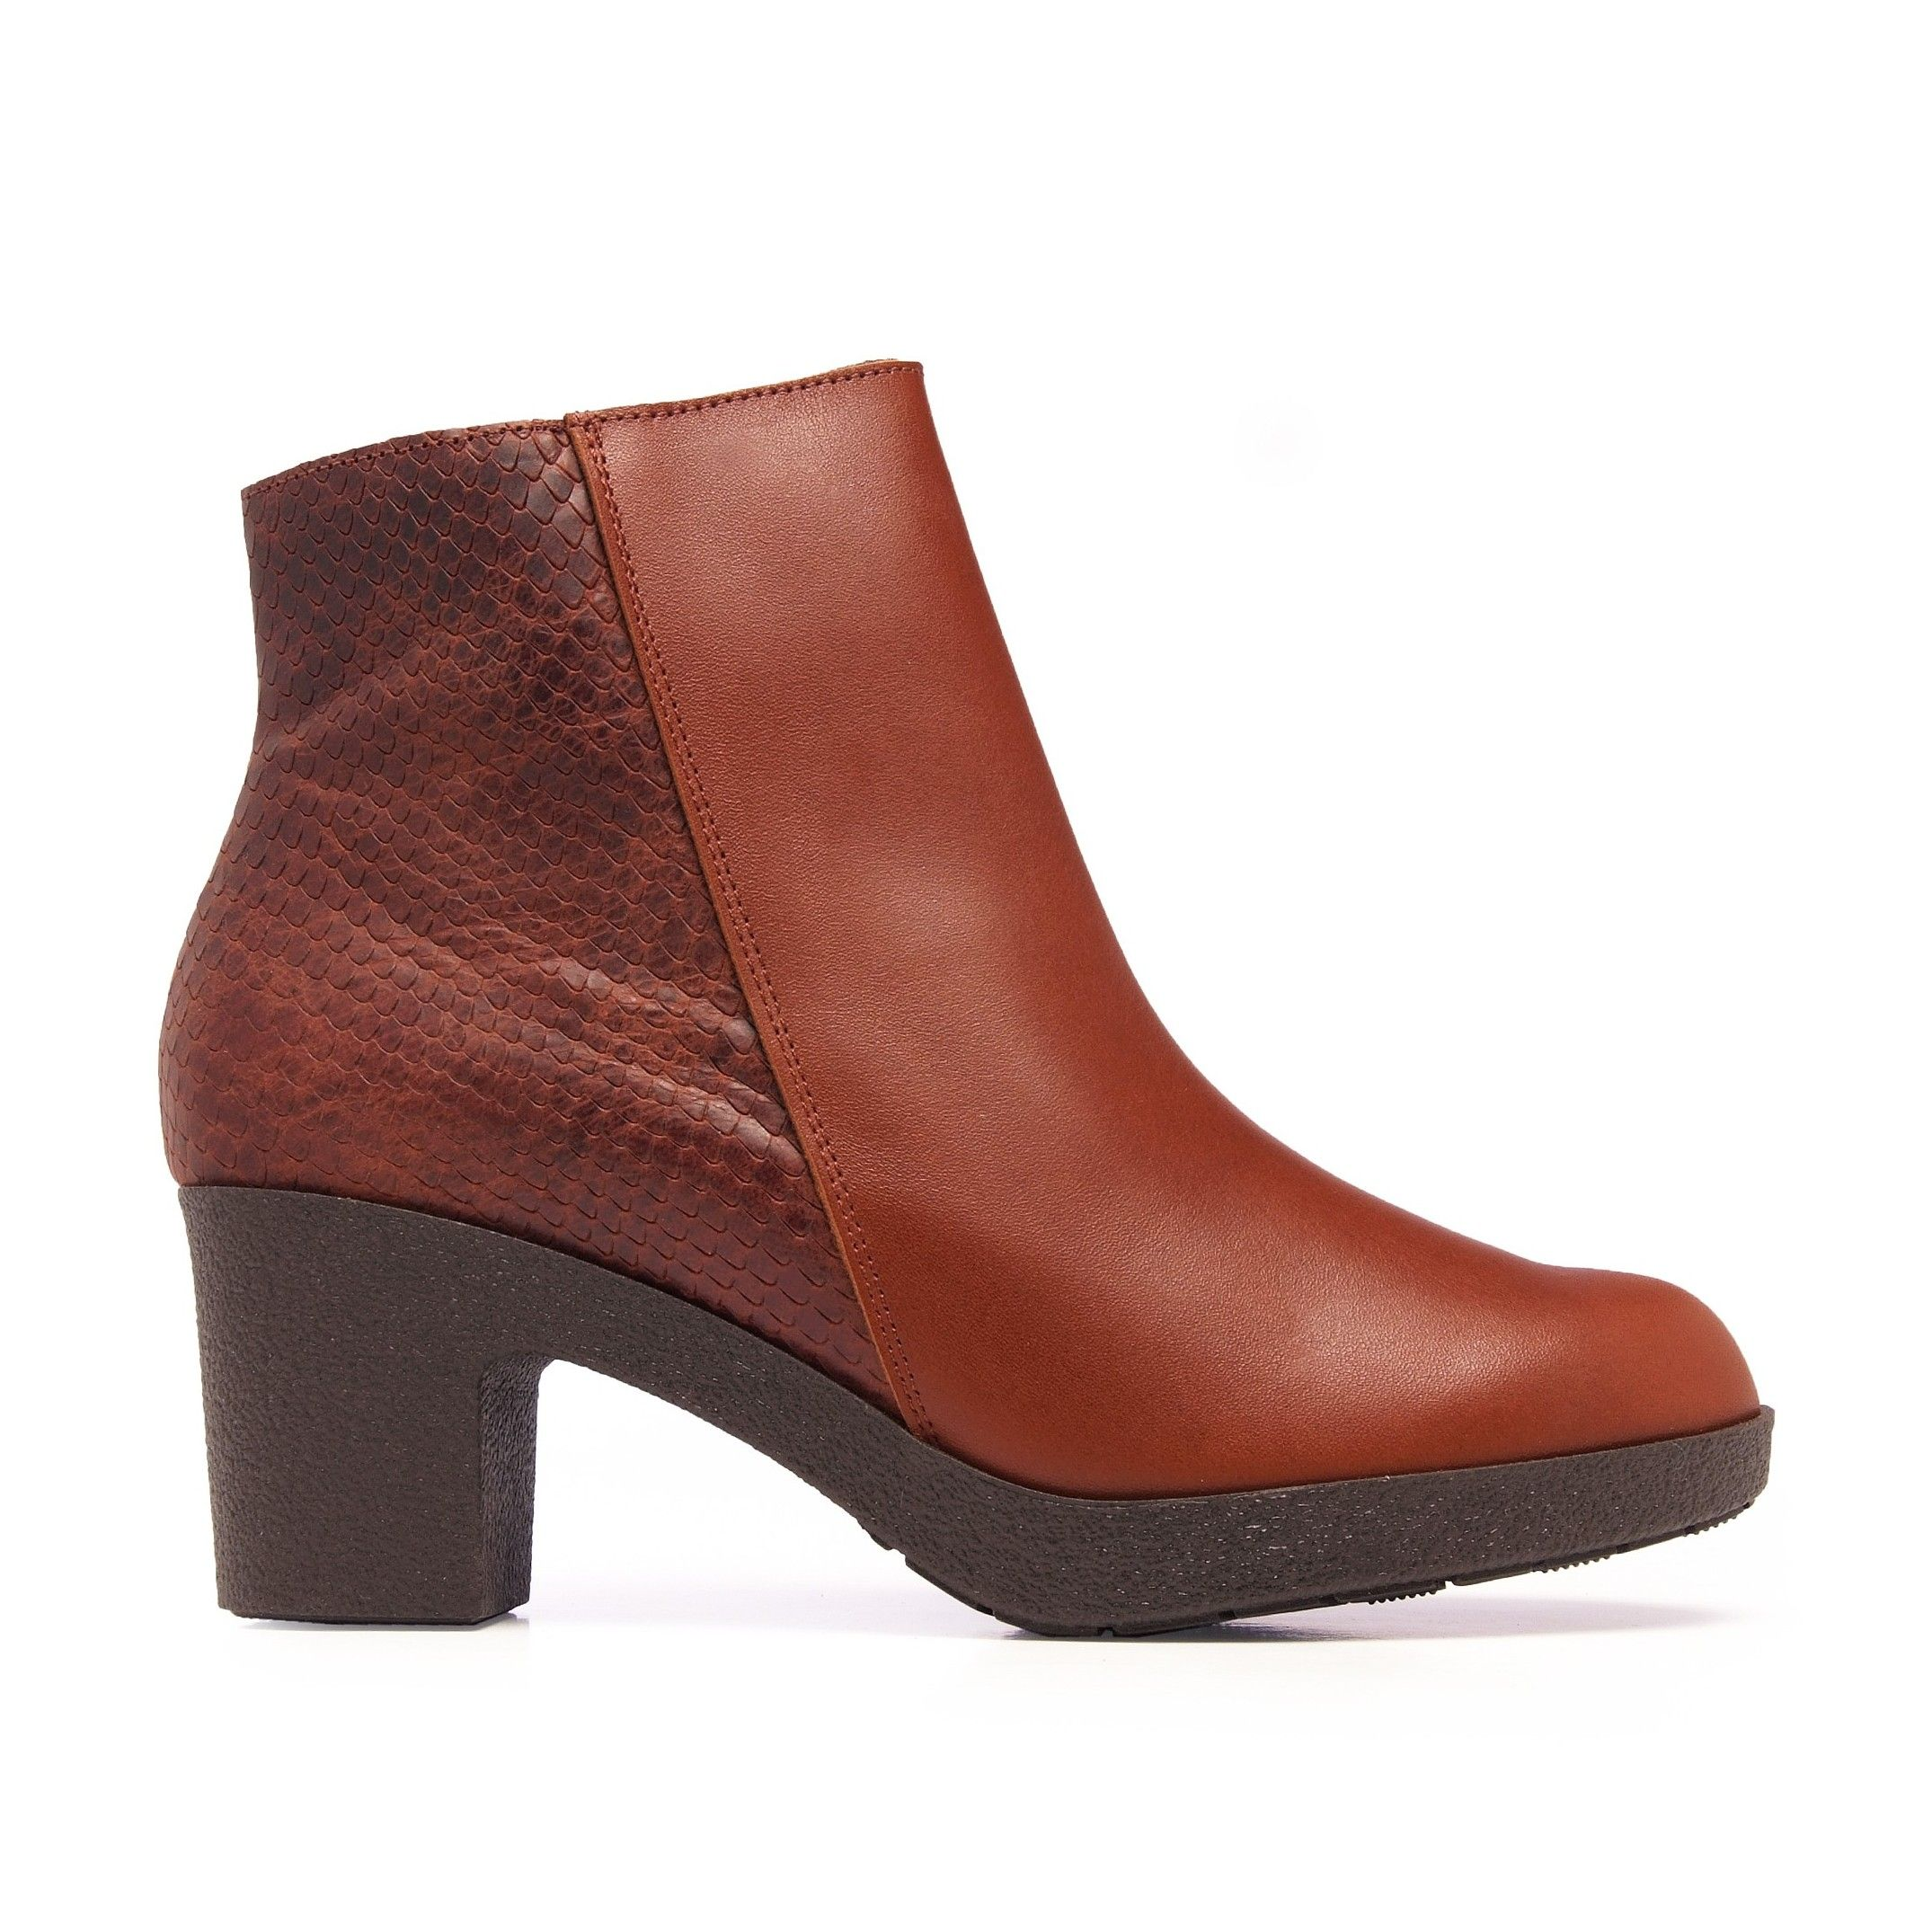 Women's Leather Ankle Cuir Boot Winter Shoes in Natural